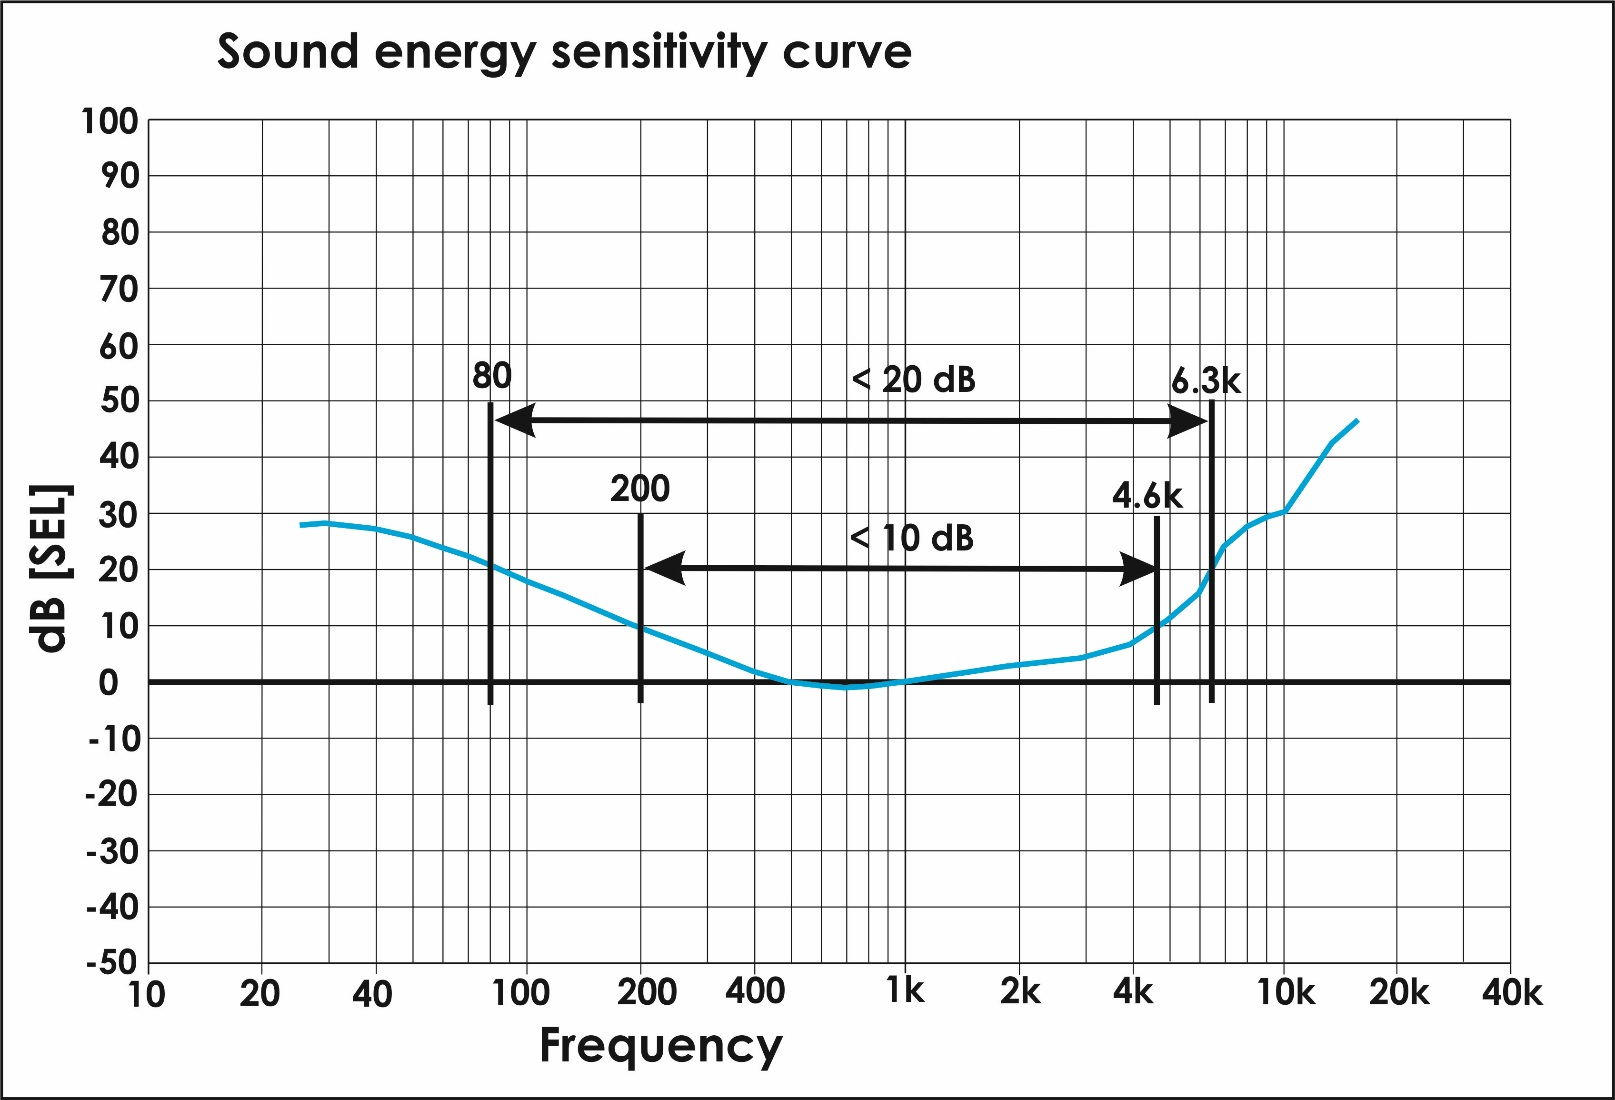 The sound energy sensitivity curve